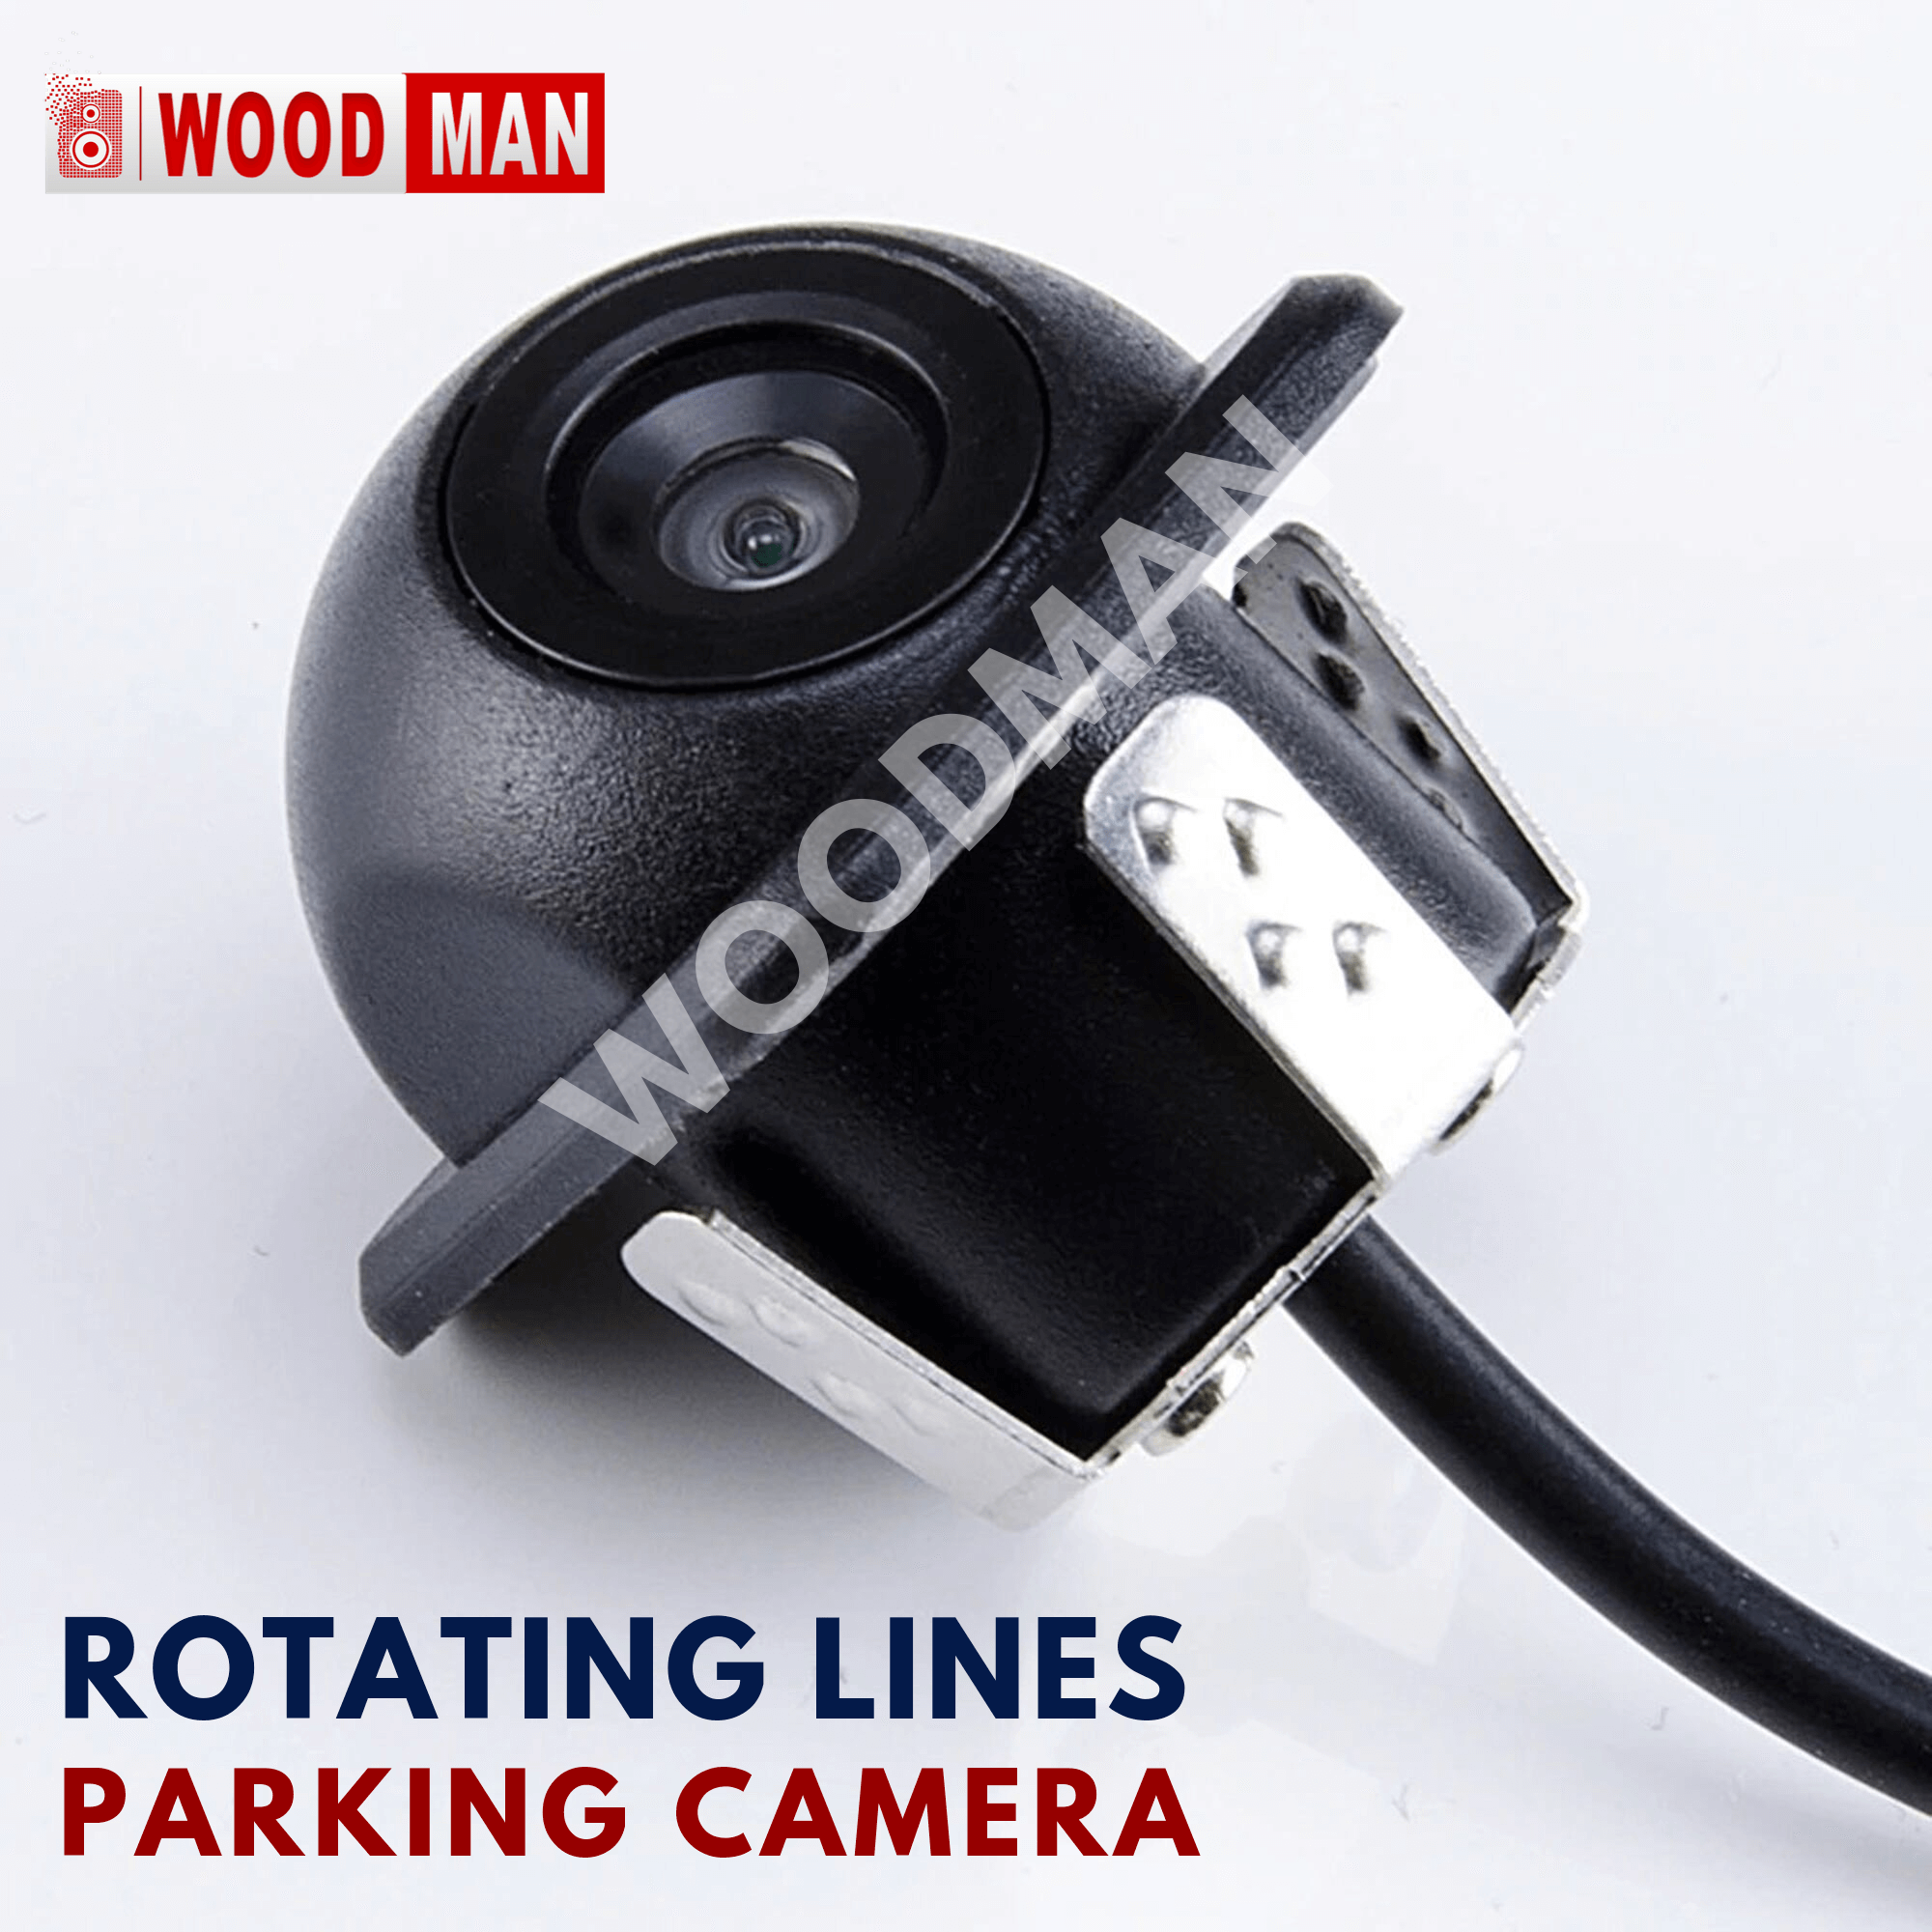 Woodman 8 LED Car Rear View Camera with Night Vision - Easy to install